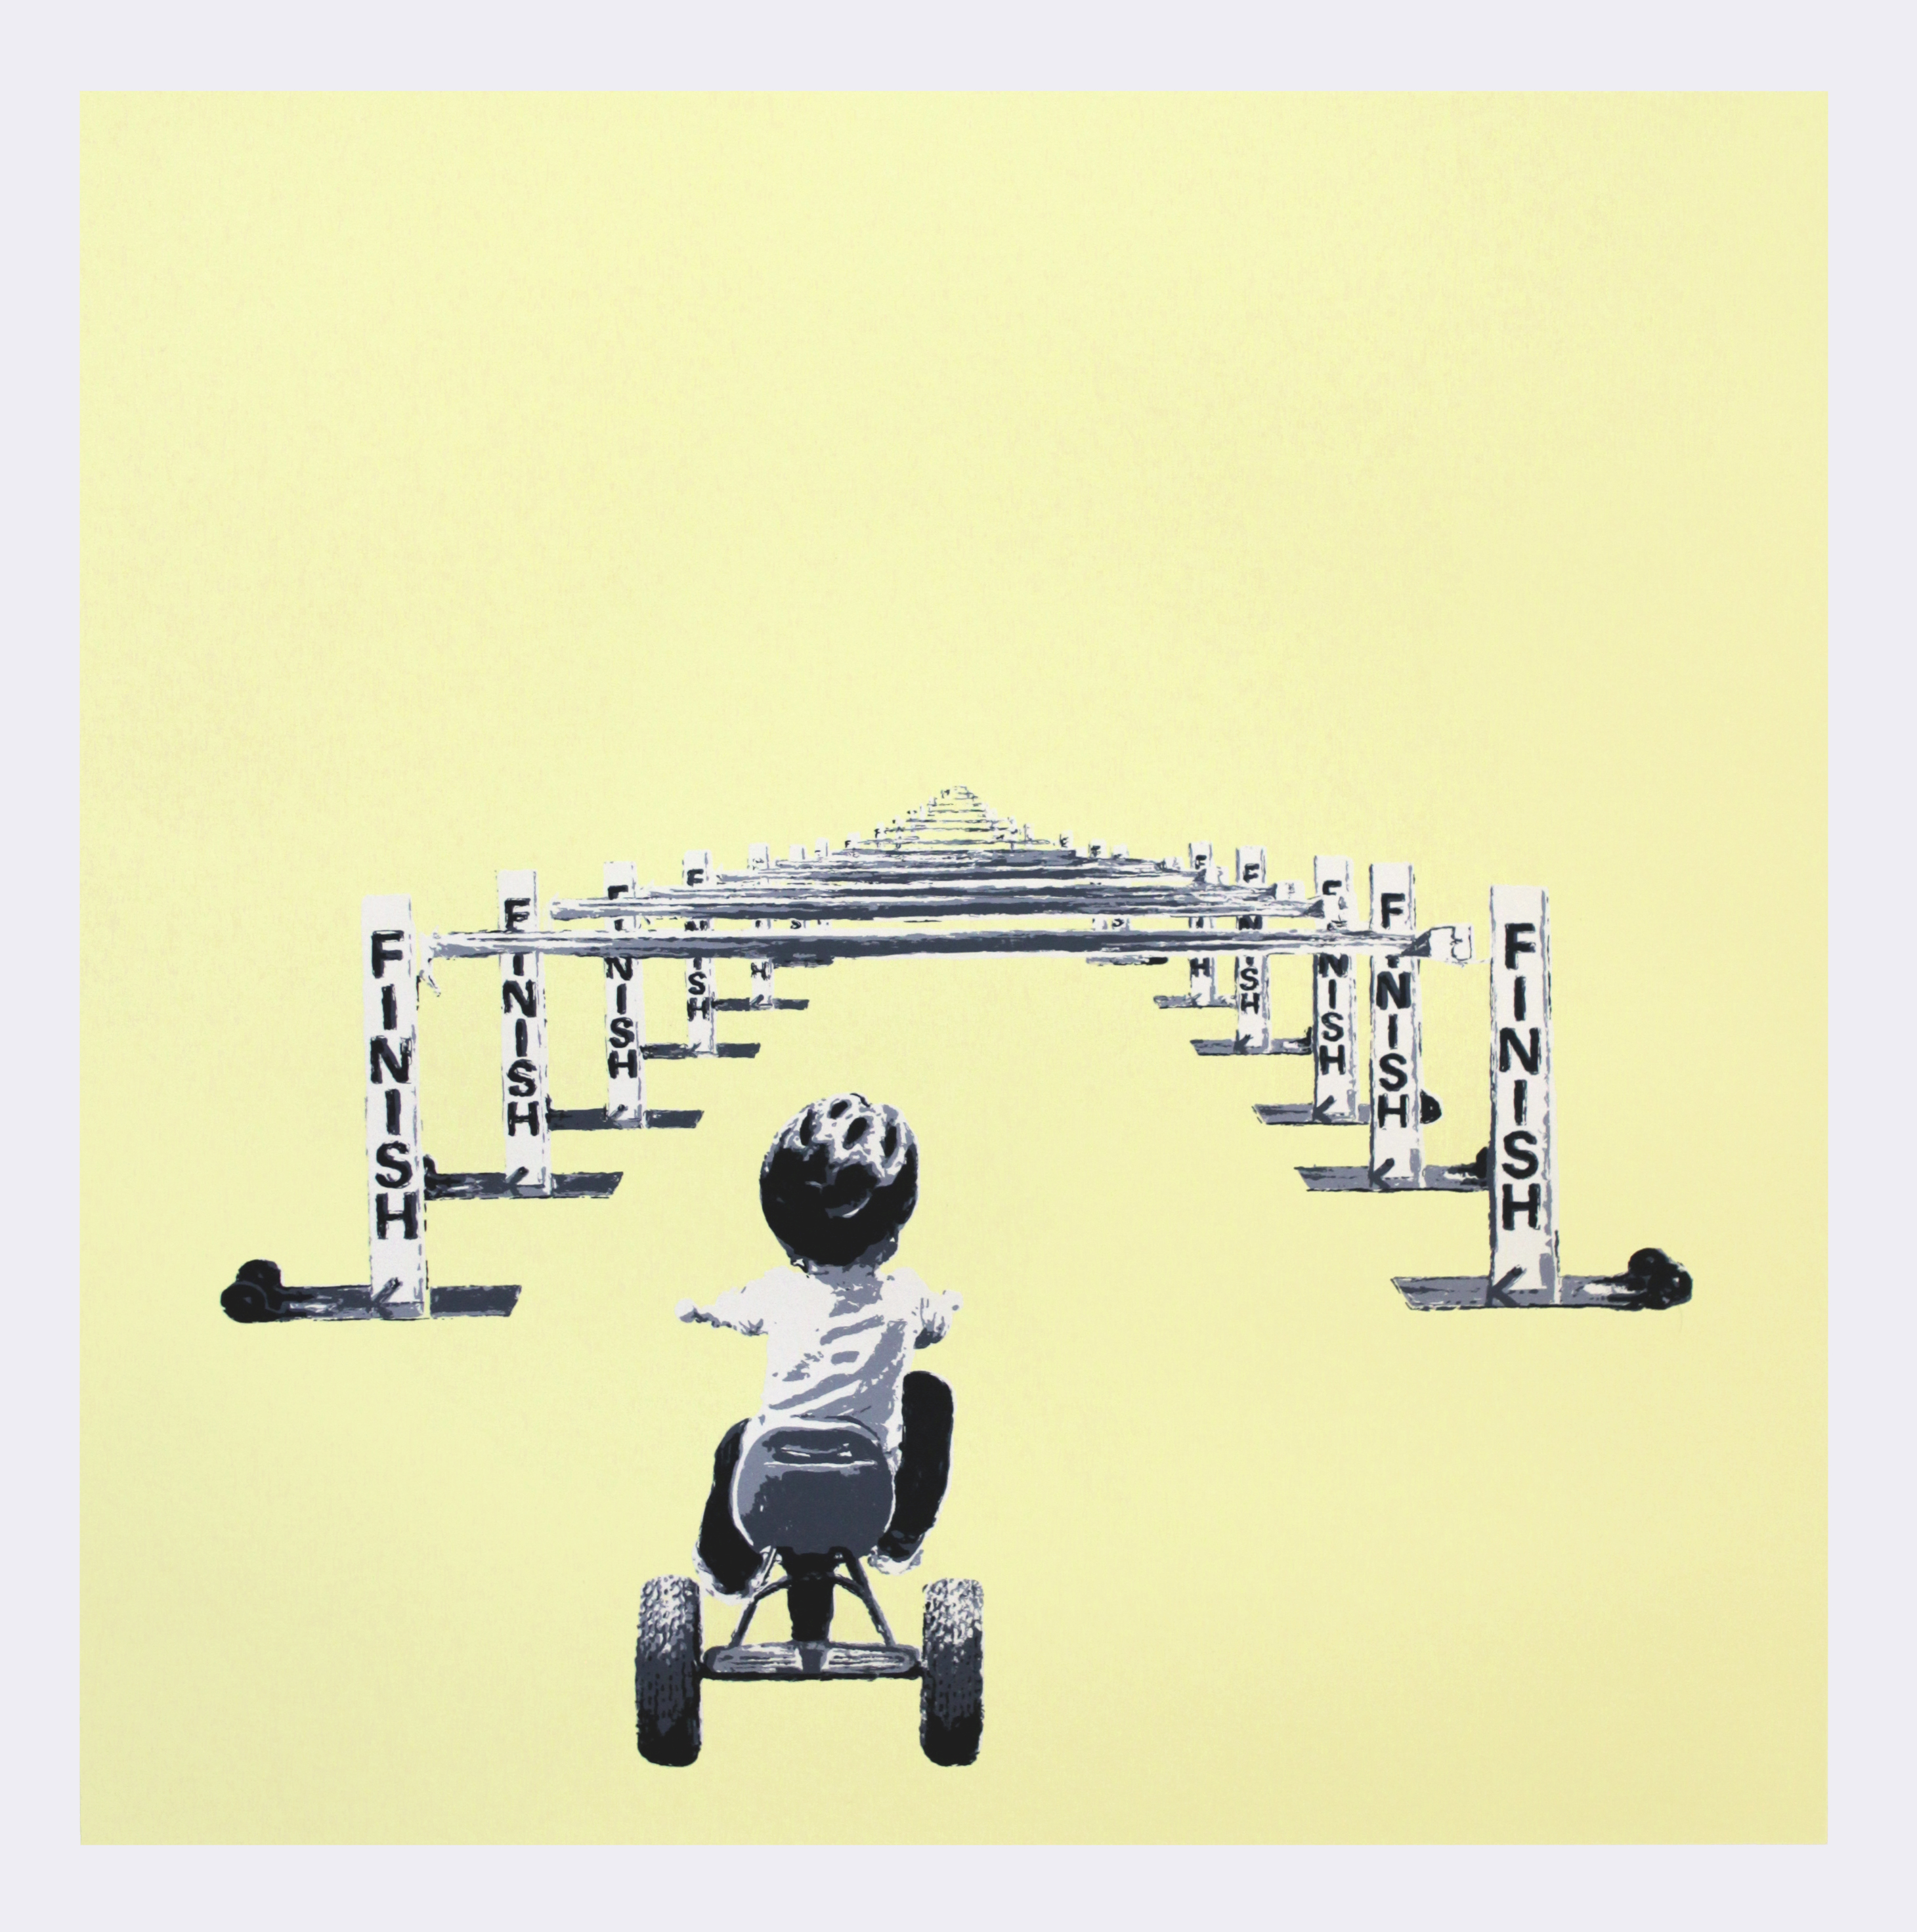 """Finish Line"" by Slate Kolain.  22"" x 22"" 5-color Screenprint.  Ed of 8 S/N.  $200 (Yellow)"